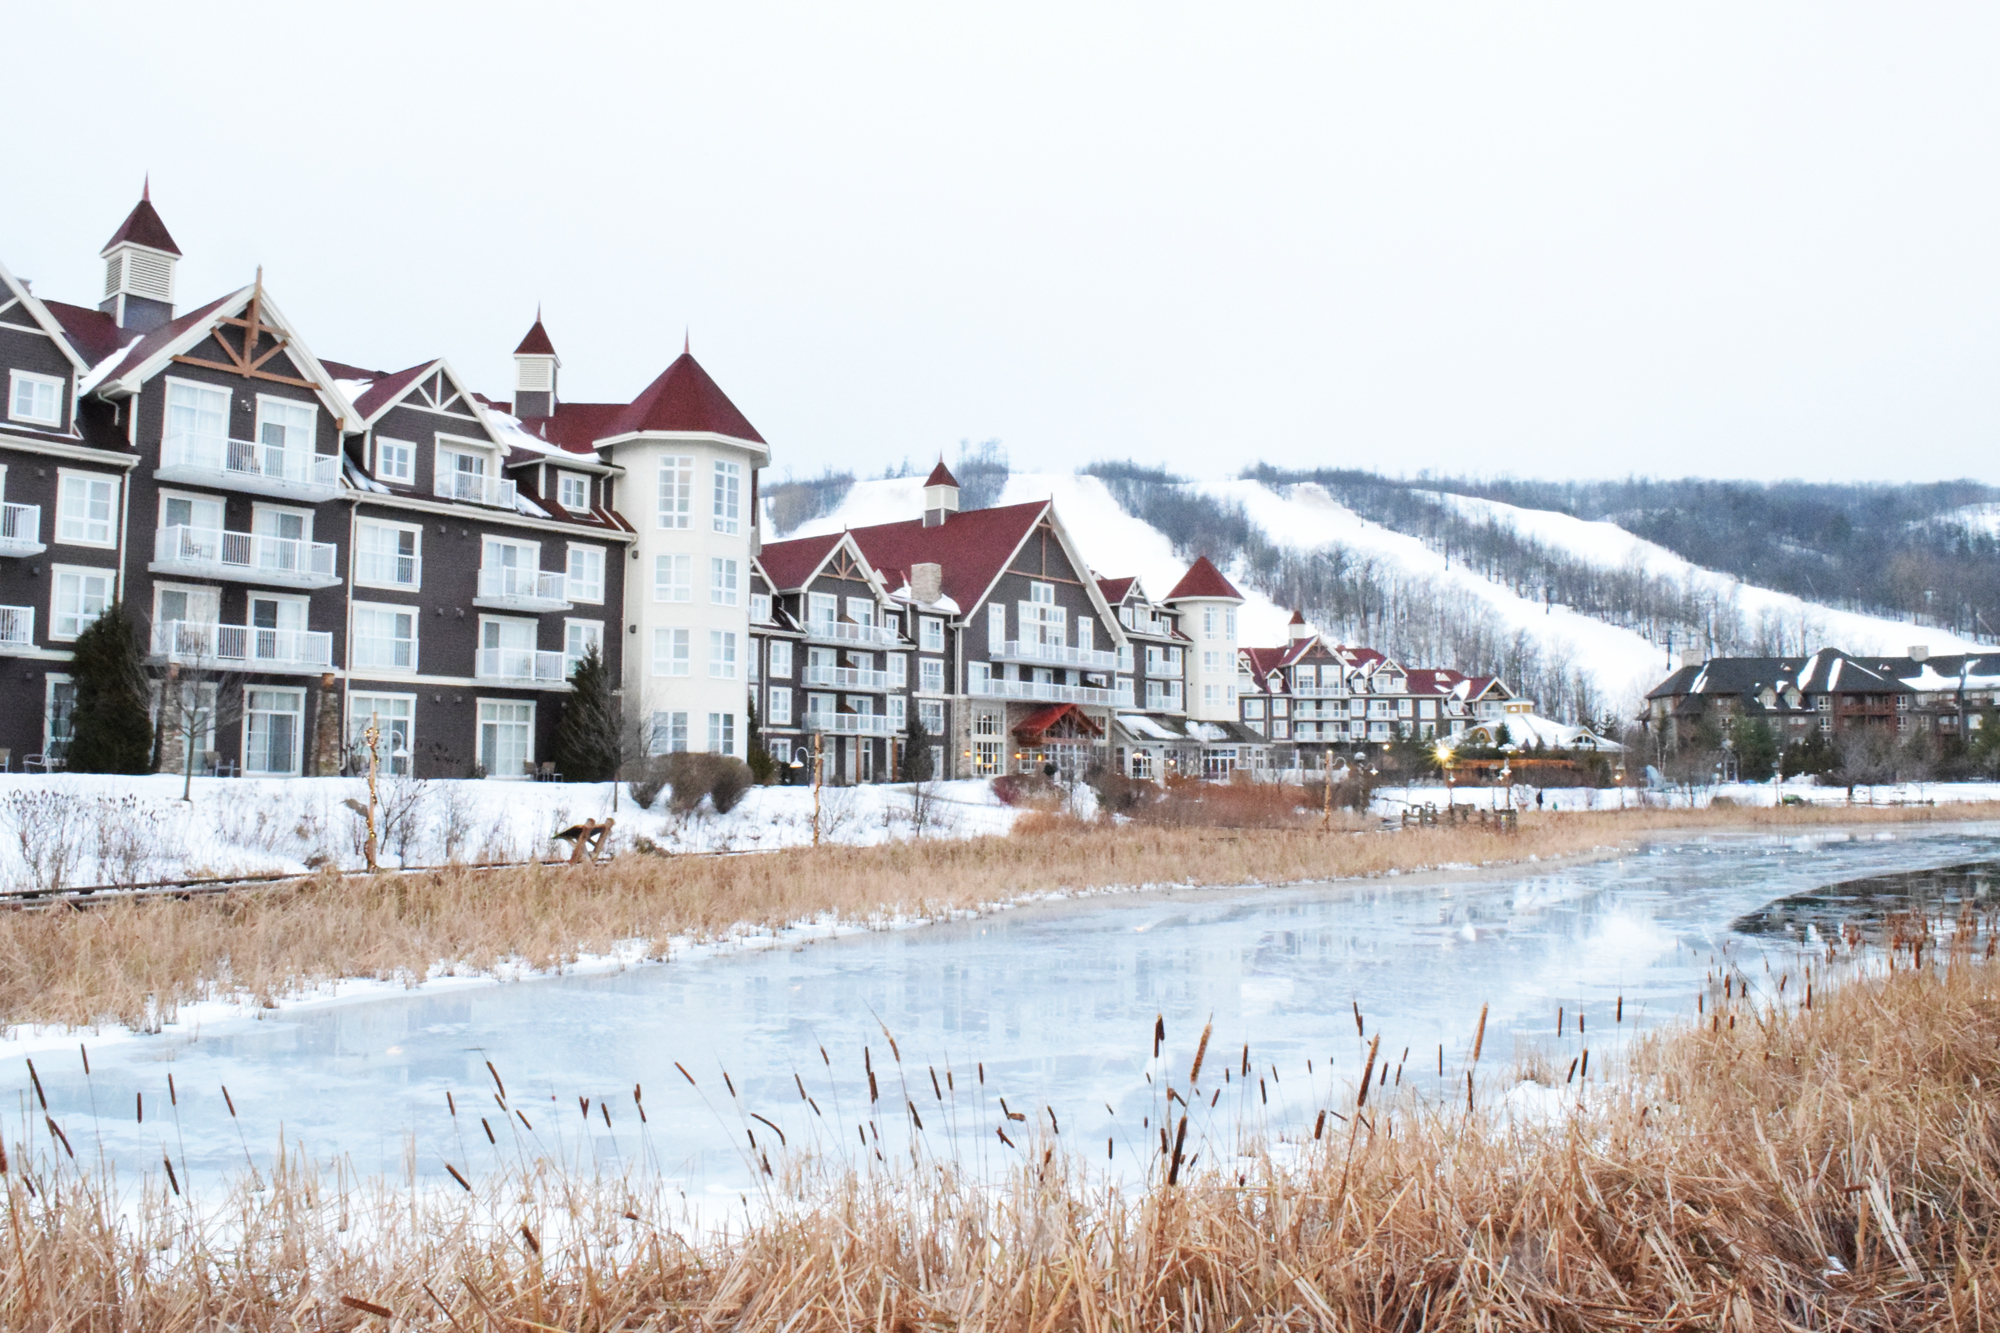 The Westin Trillium House - Blue Mountain